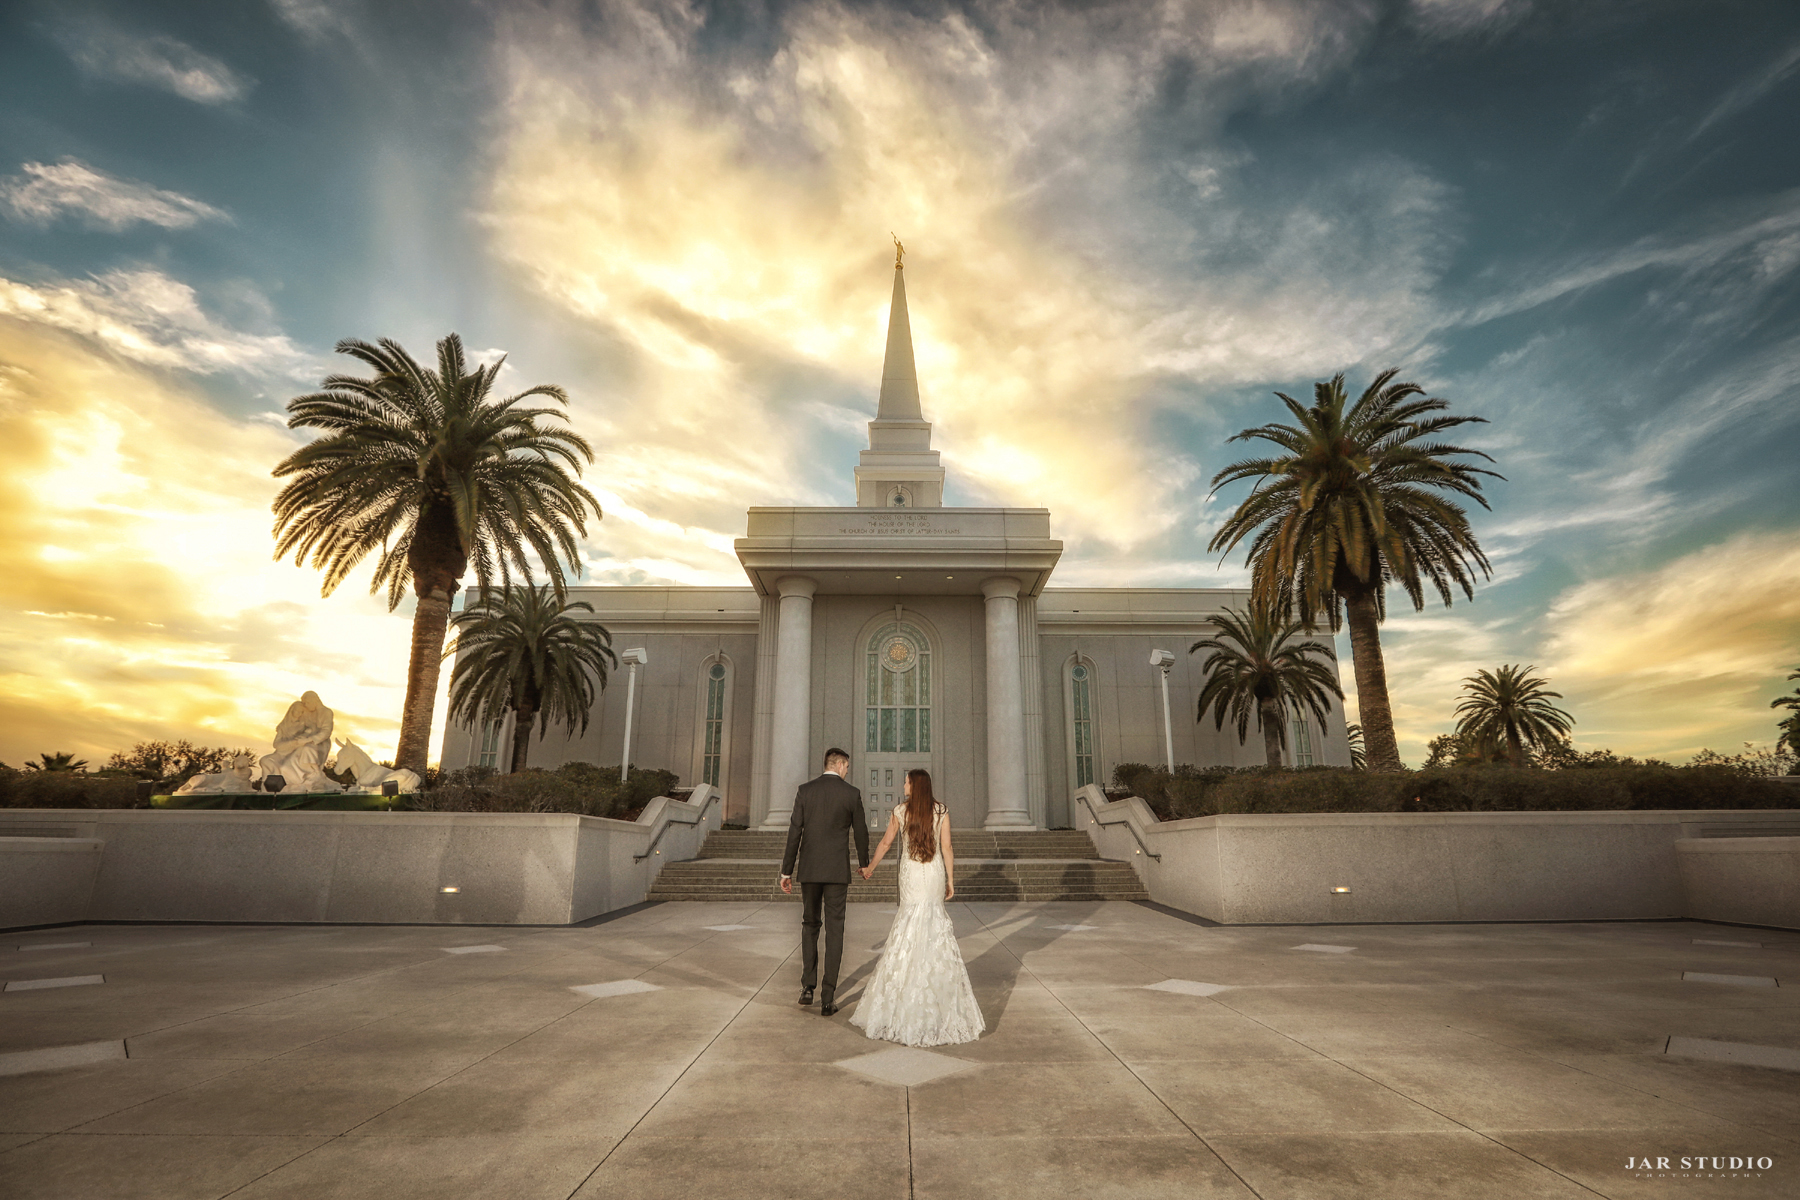 windermere-florida-temple-photographer-lds-jarstudio- (33).jpg